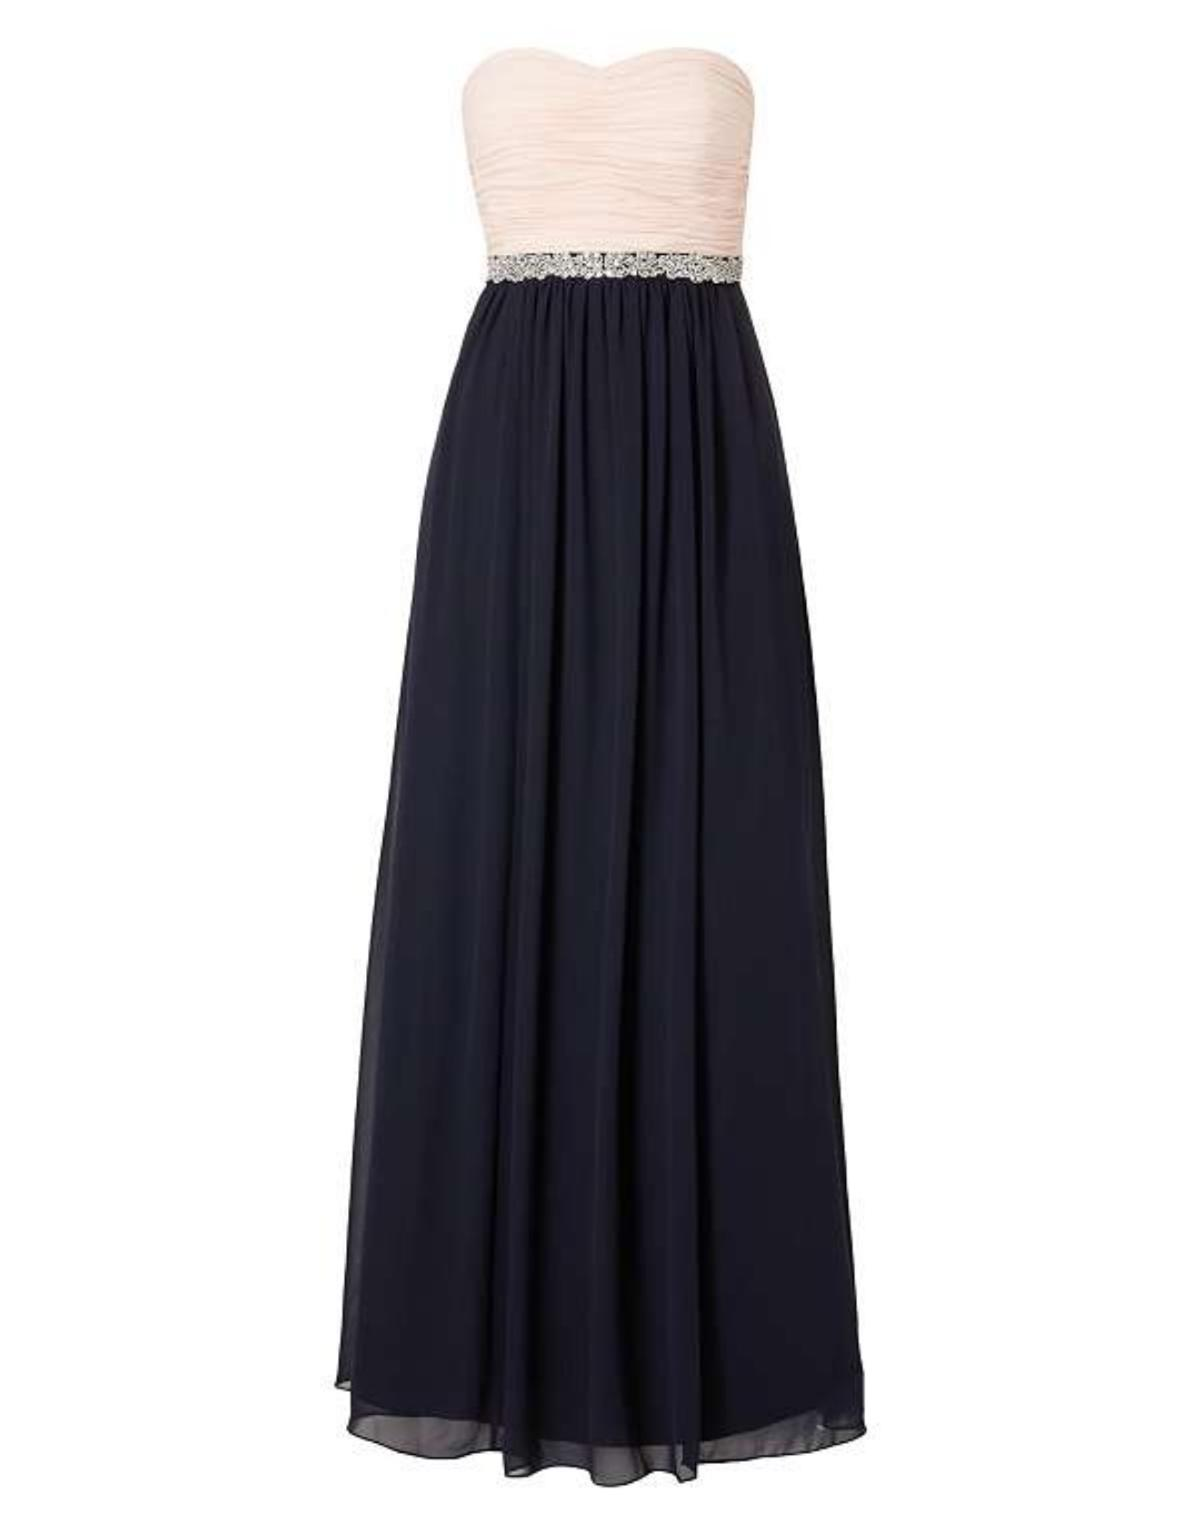 Christian Berg Cocktail Two-Tone Abendkleid a